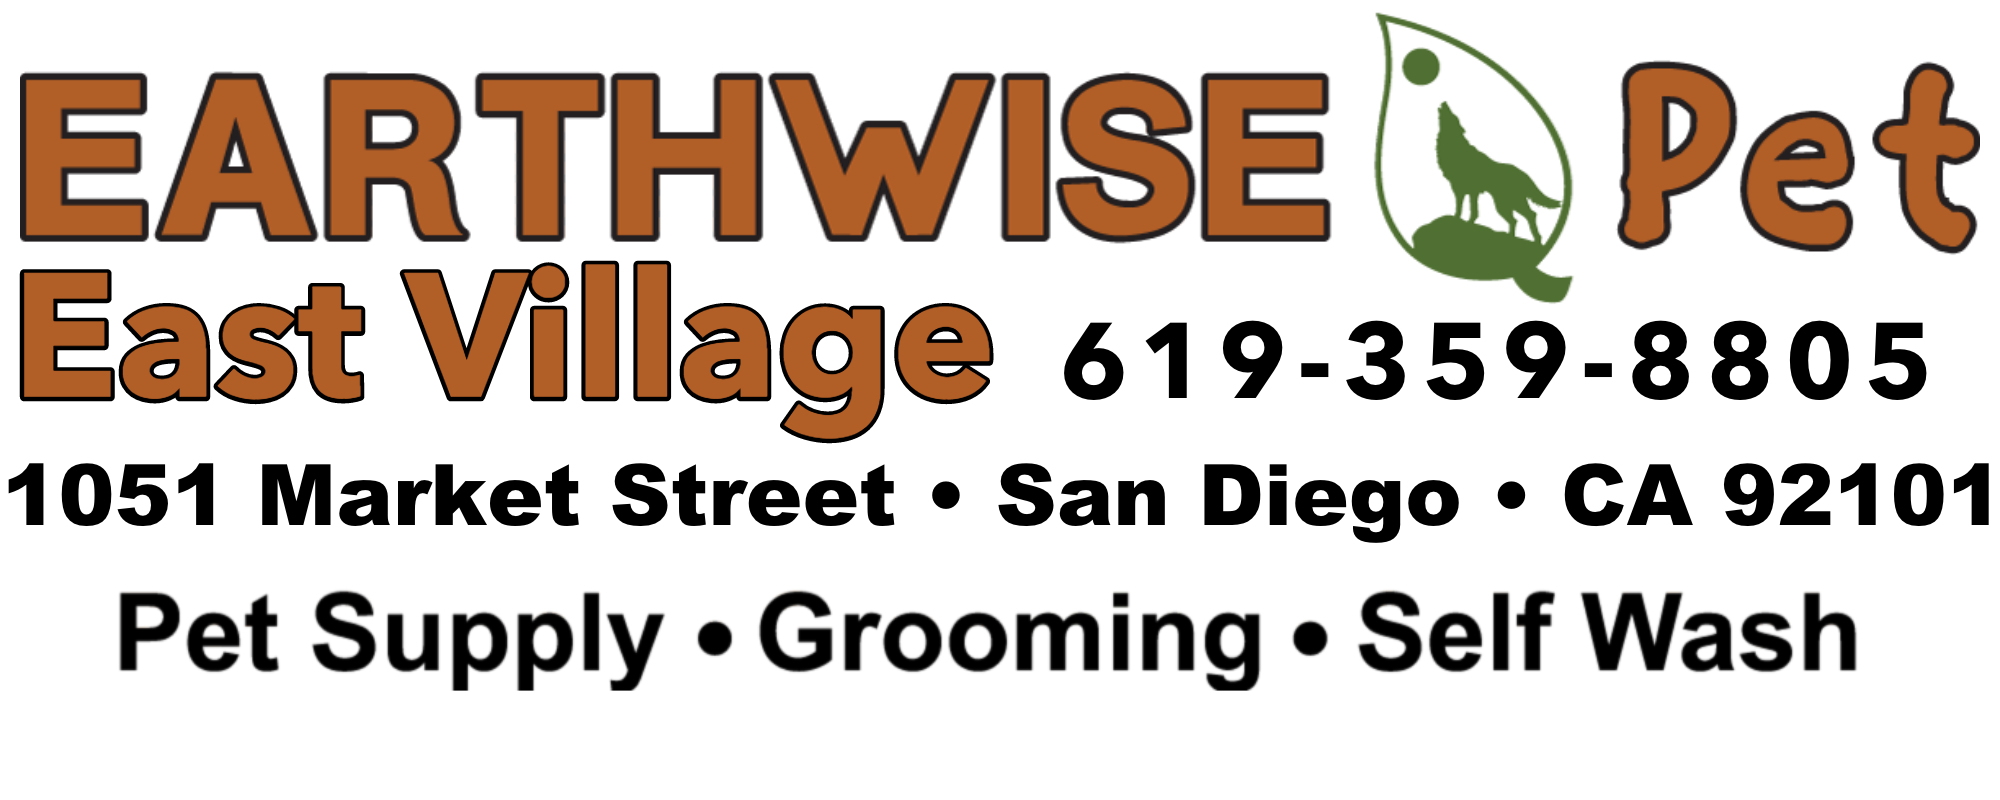 Earthwise Pet – East Village